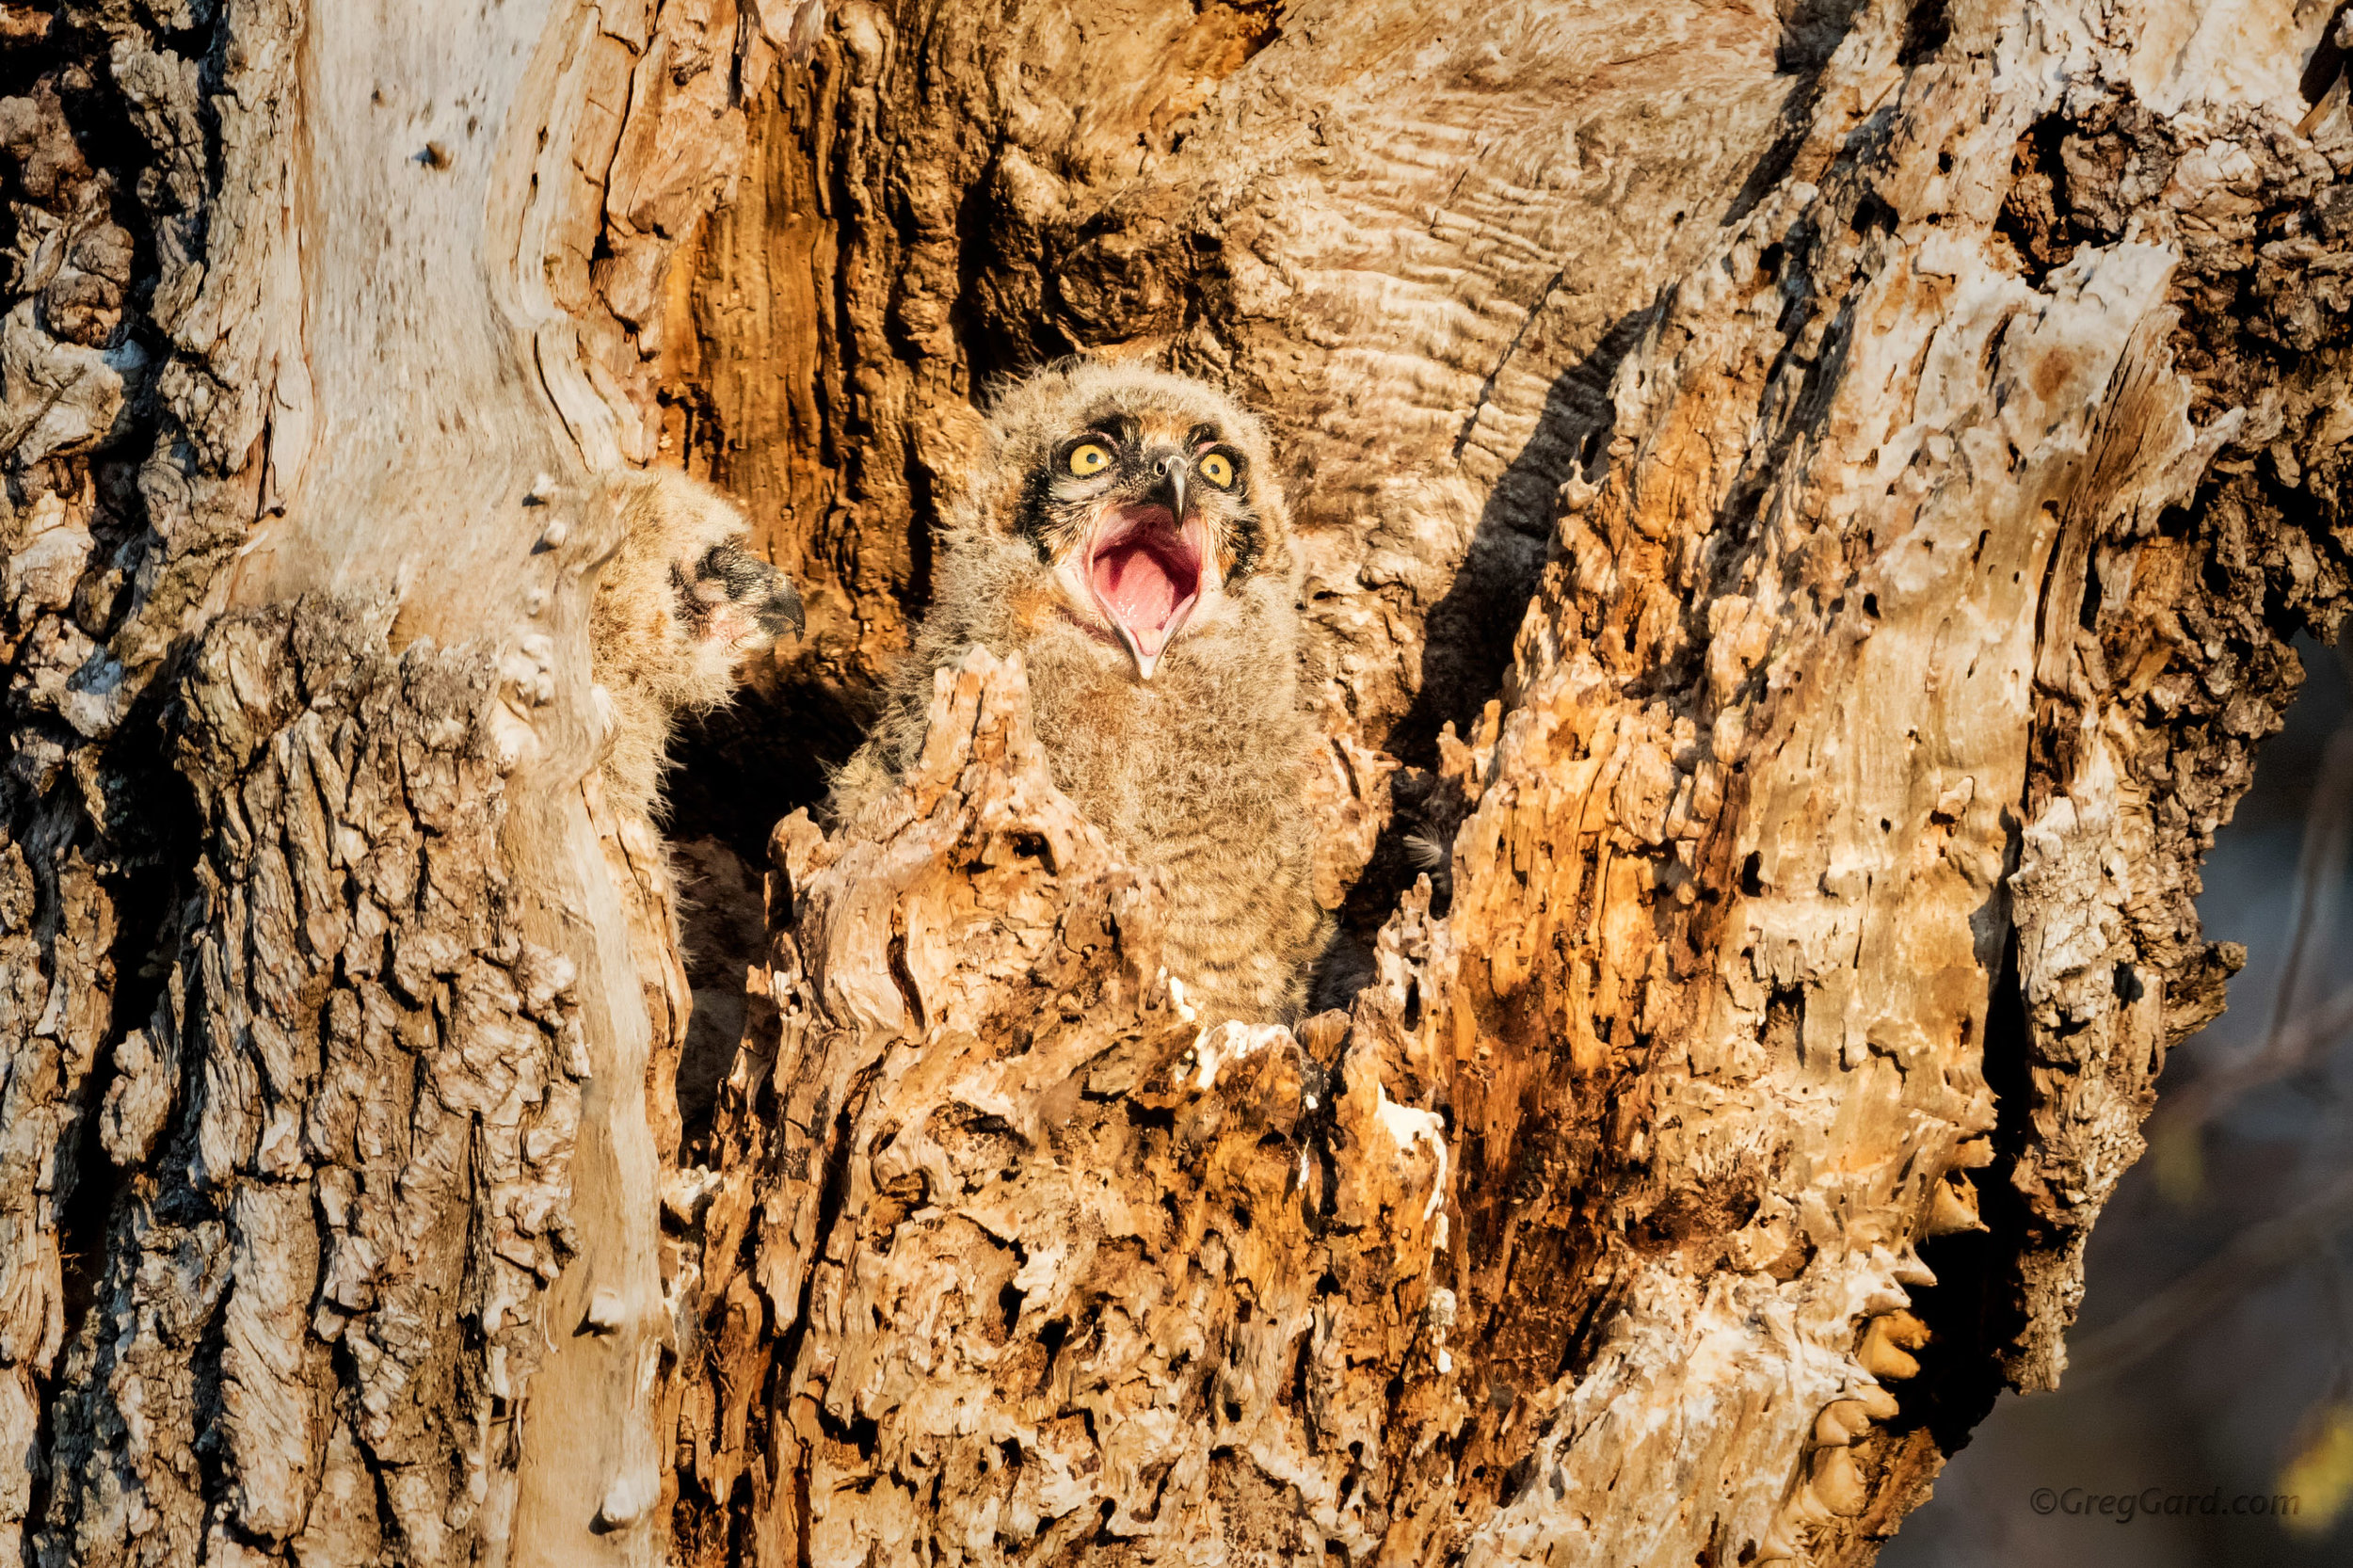 Great Horned Owlet yawning